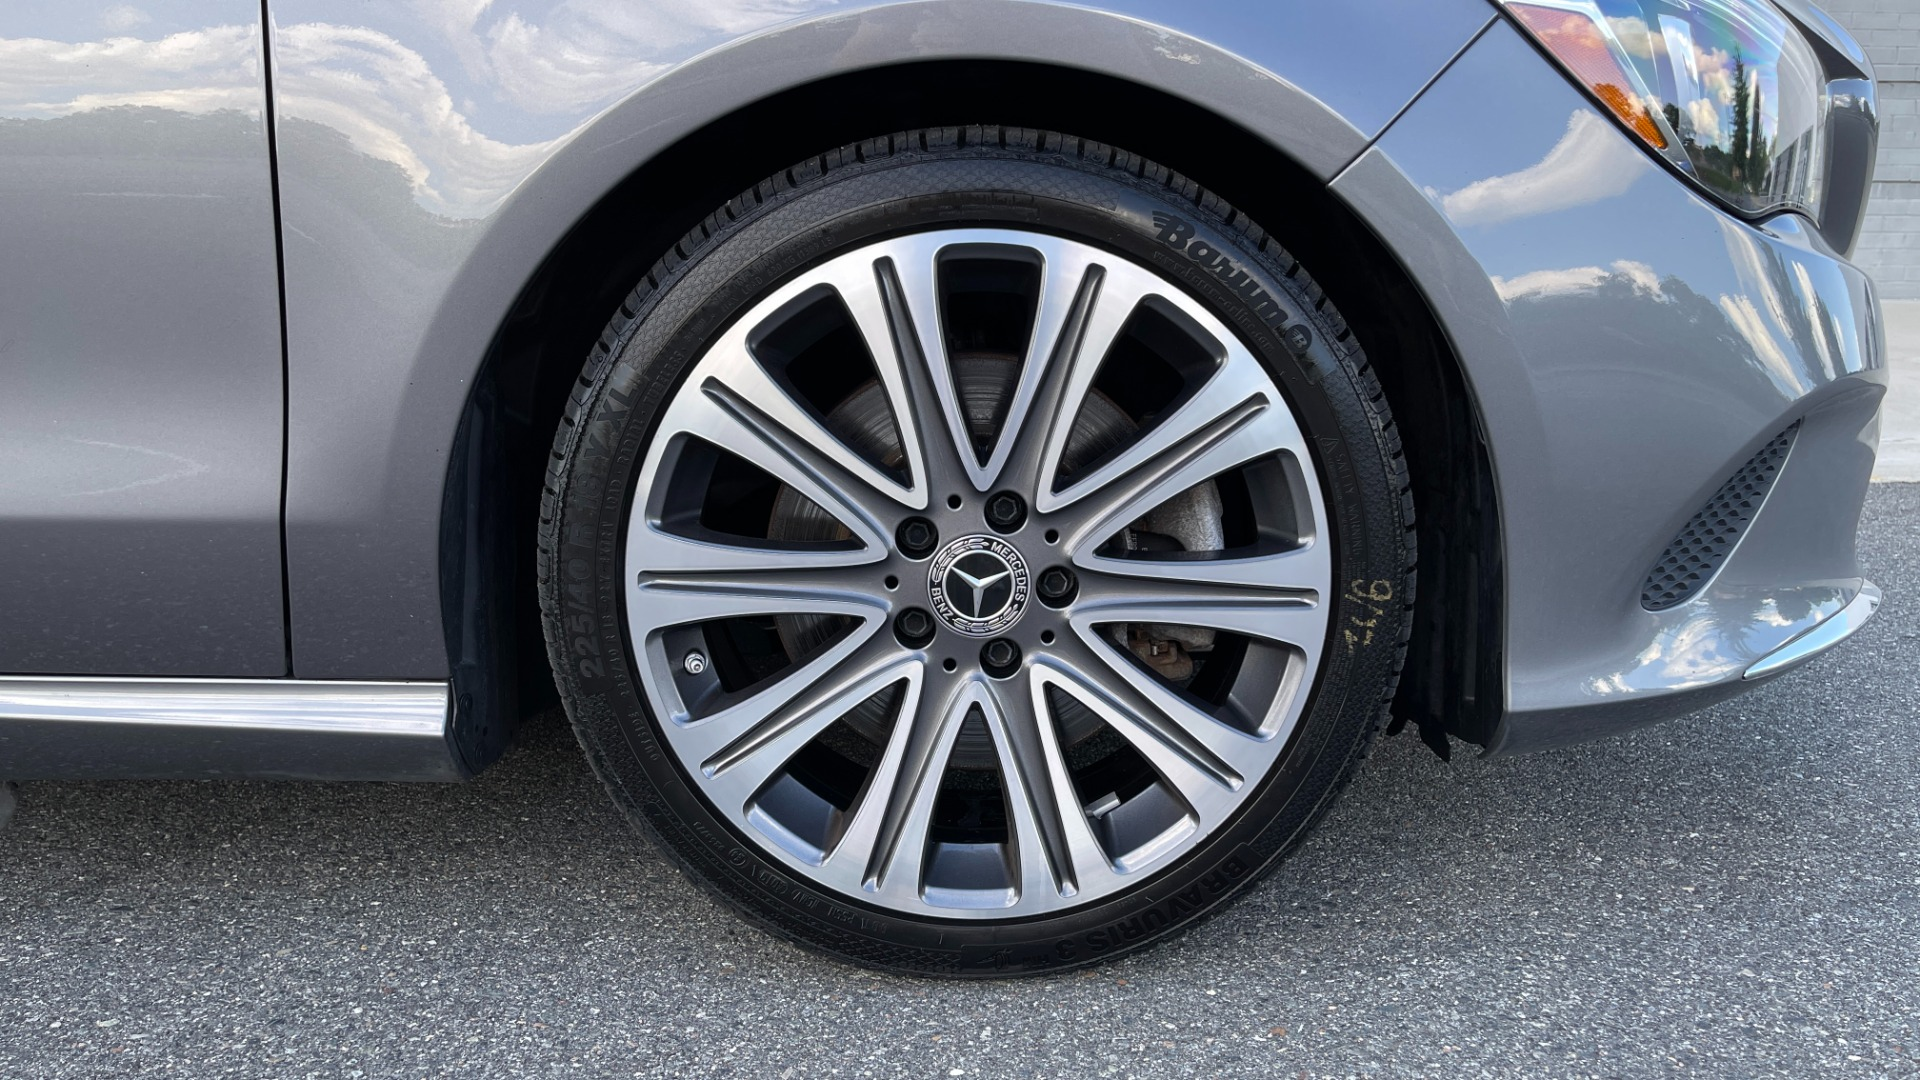 Used 2019 Mercedes-Benz CLA 250 4MATIC PREM & CONV PKG / APPLE / PANO-ROOF / H/K SND / REARVIEW for sale $29,795 at Formula Imports in Charlotte NC 28227 70